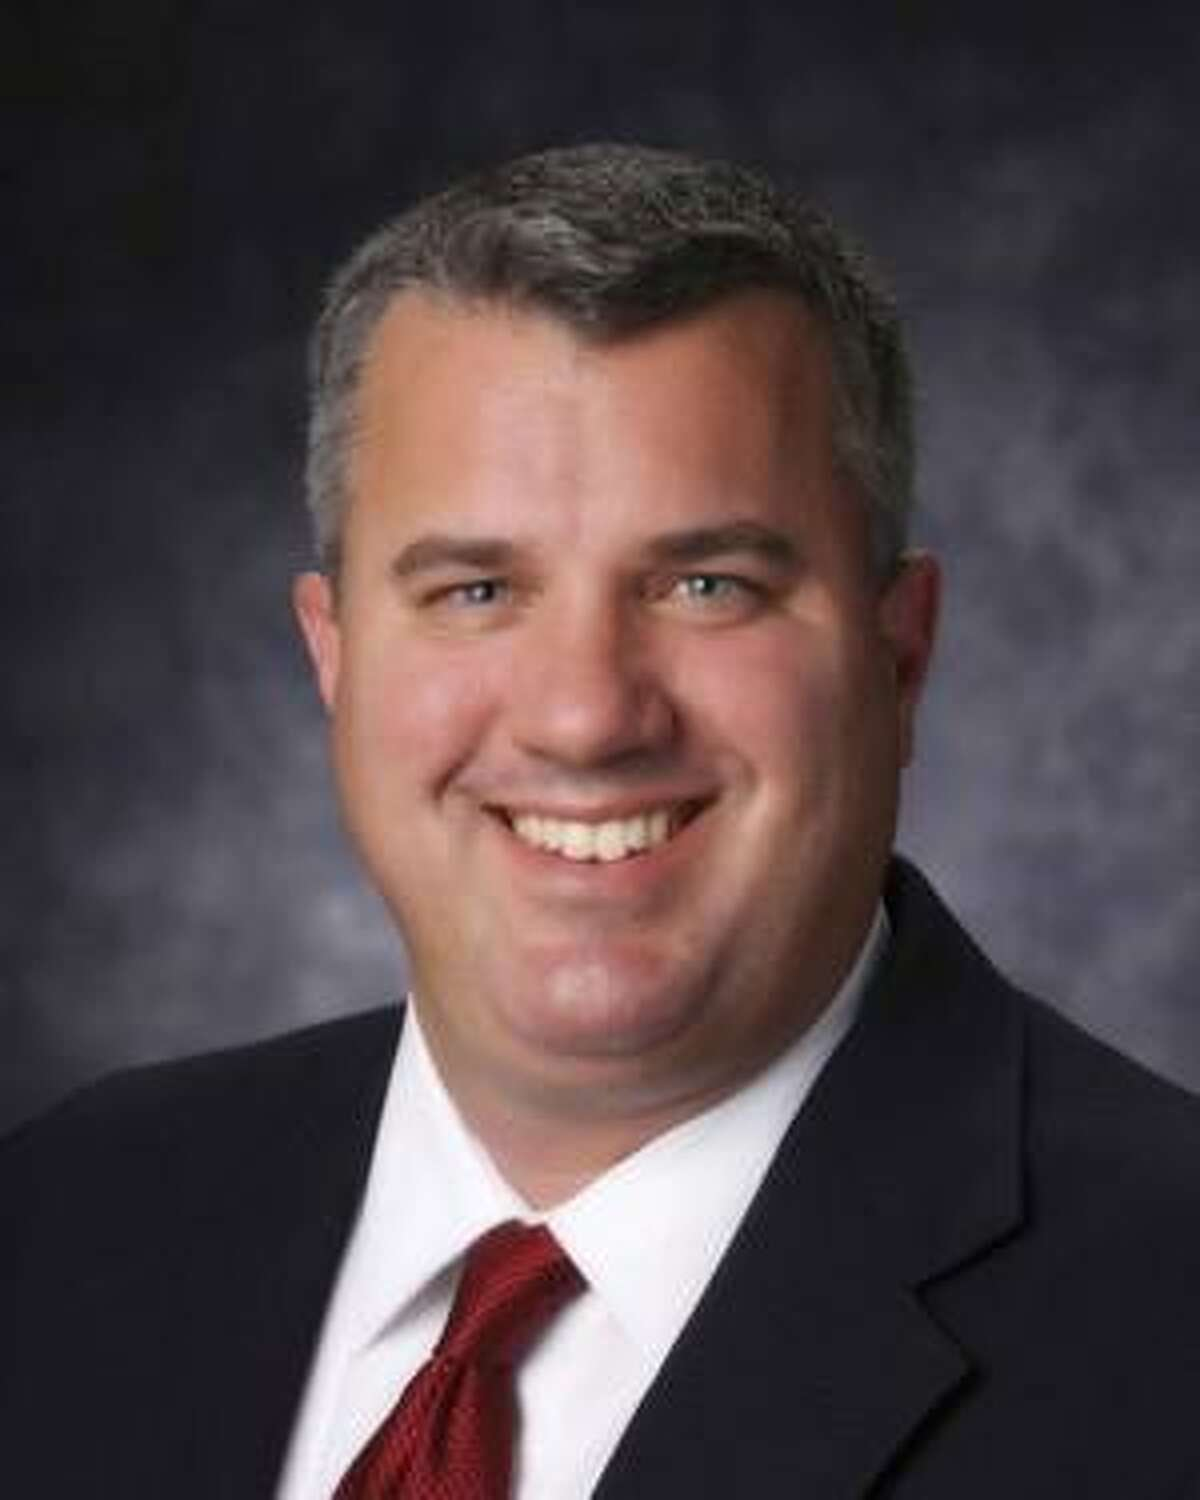 Attorney Gary Inmon, a 17-year veteran of the Schertz-Cibolo-Universal City ISD school board, is running for reelection in the Nov. 7, 2017, election